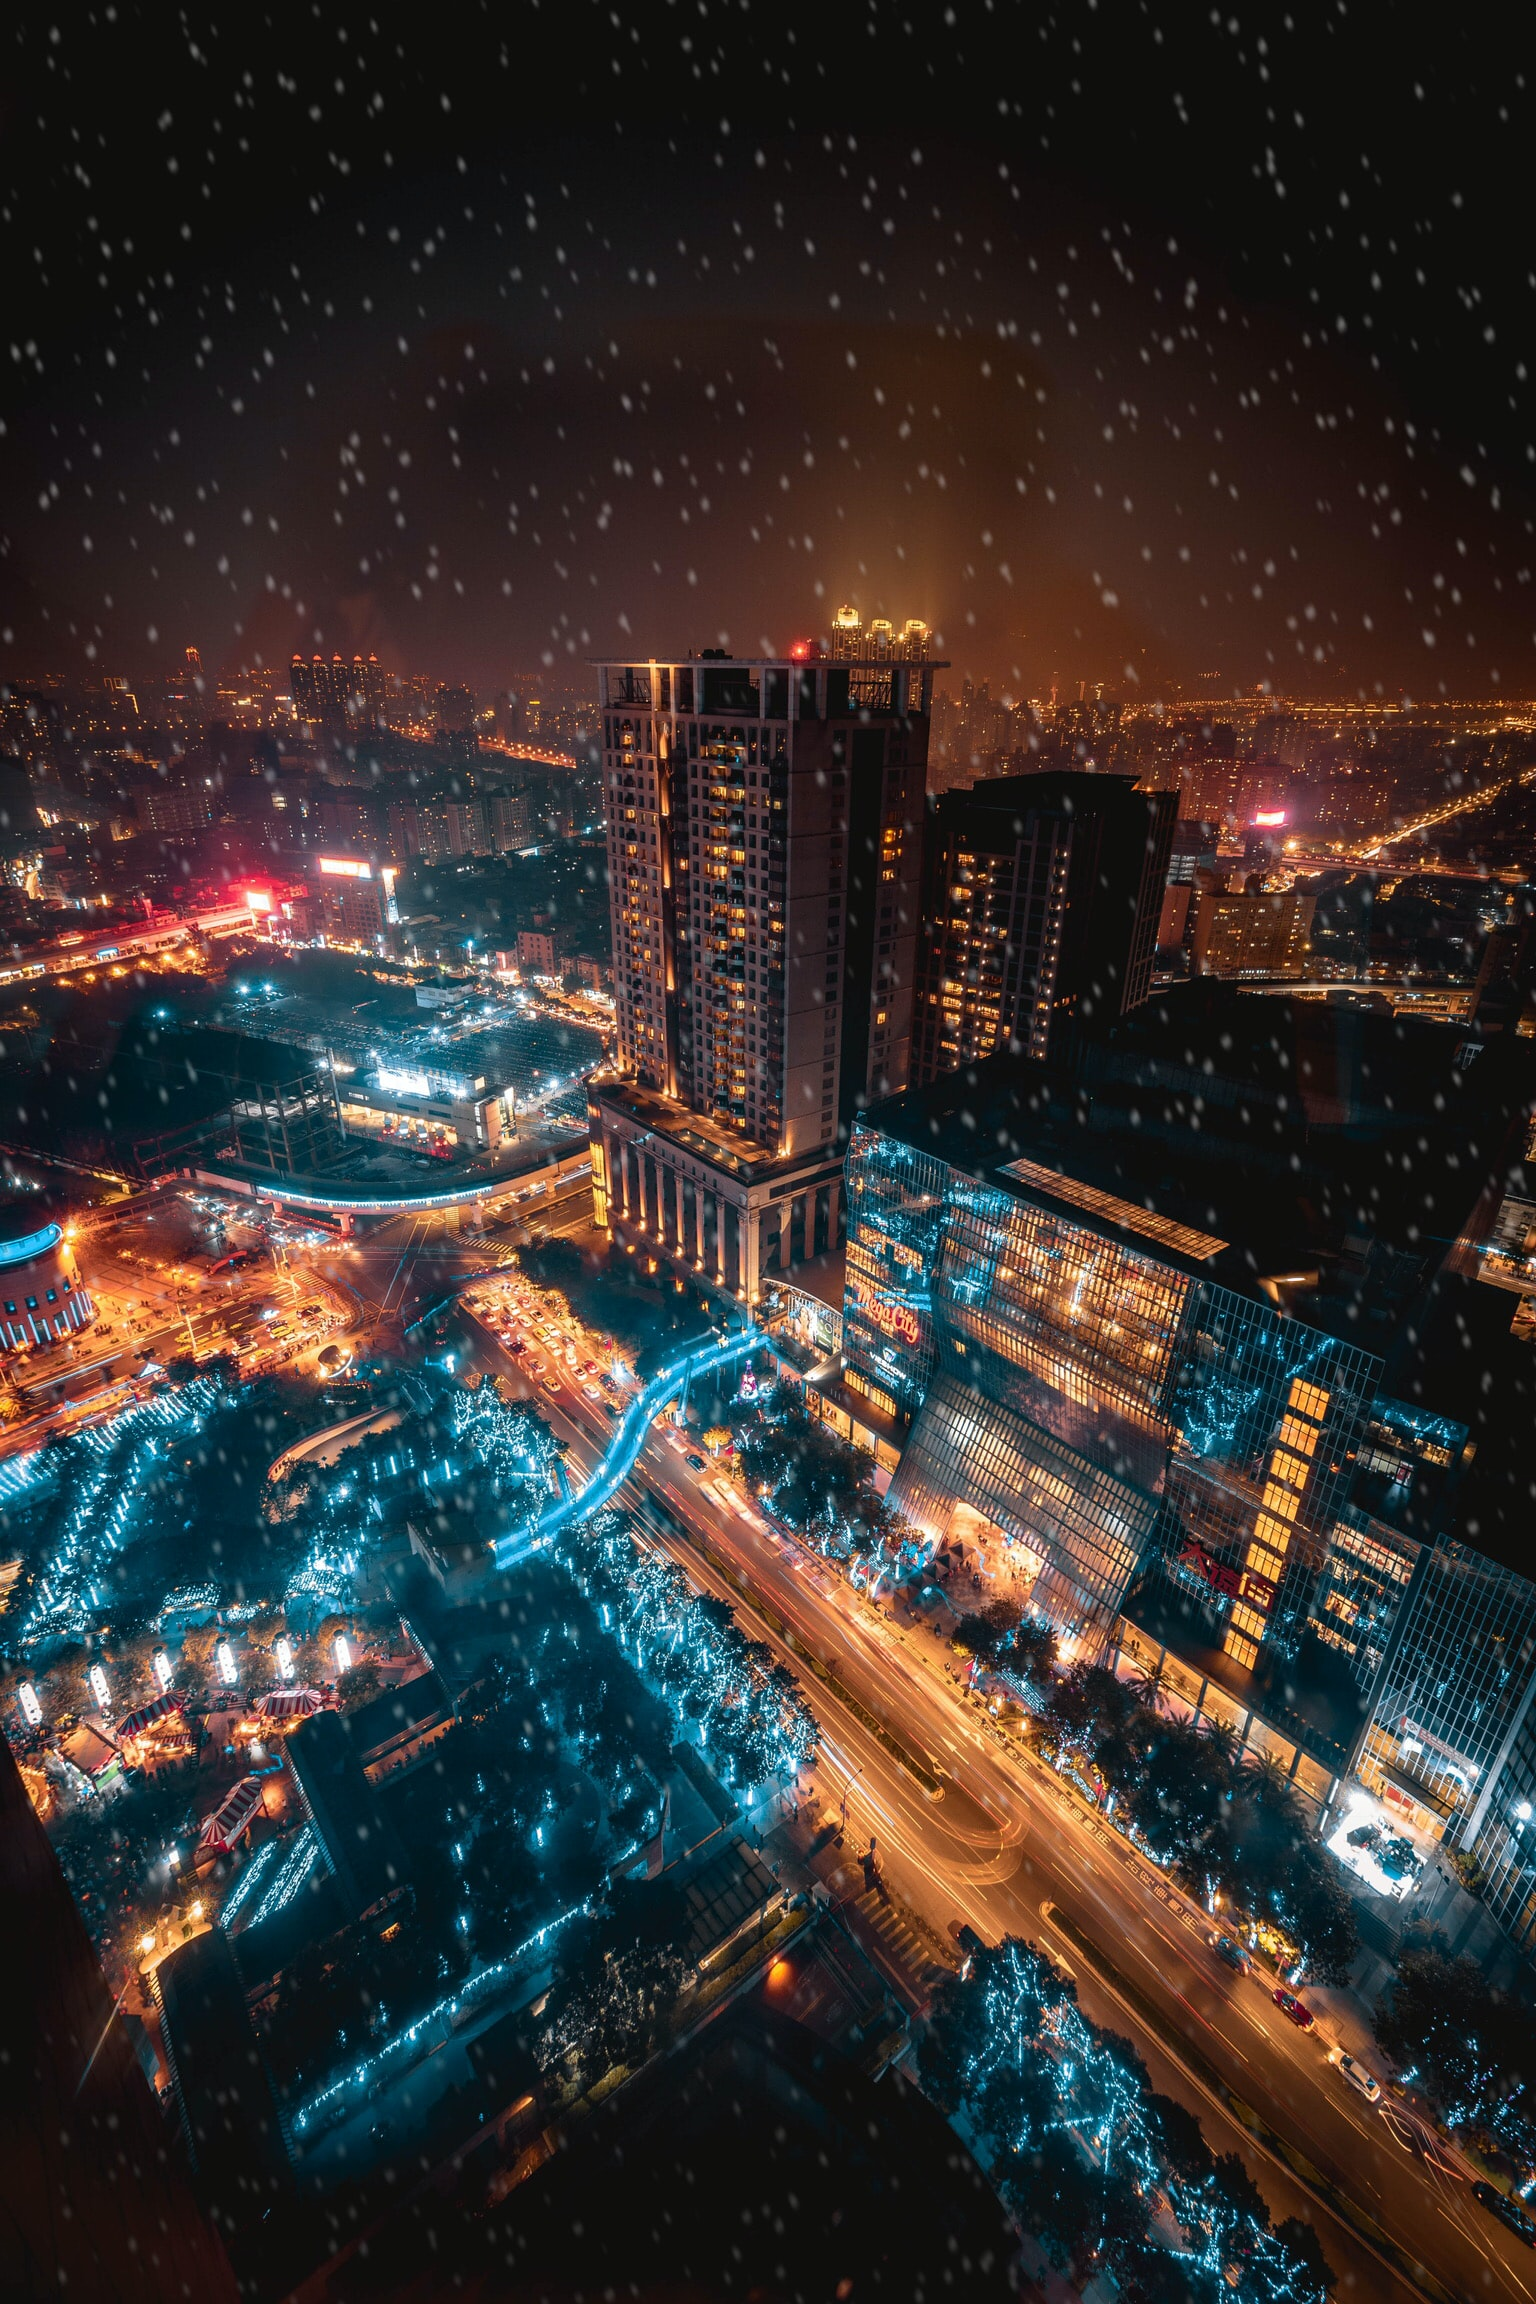 aerial view photography of city buildings during nighttime